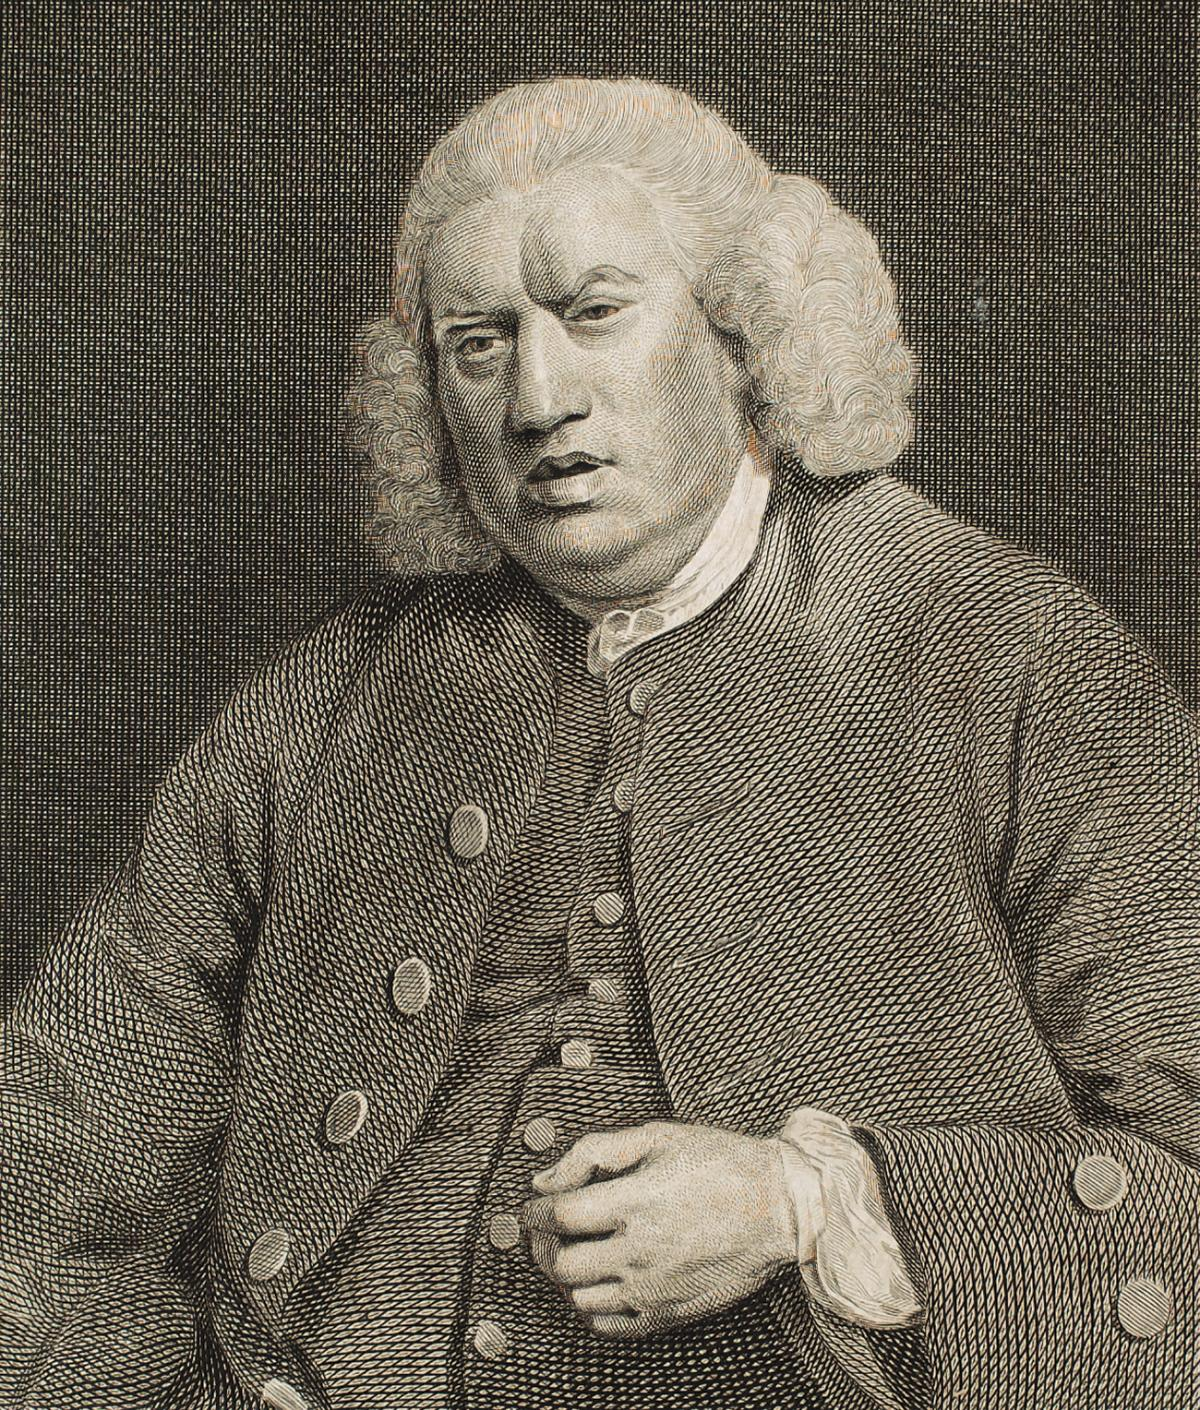 Johnson in a buttoned waistcoat and jacket, left hand held below his chest, mouth slightly open and frowning, not looking at the viewer